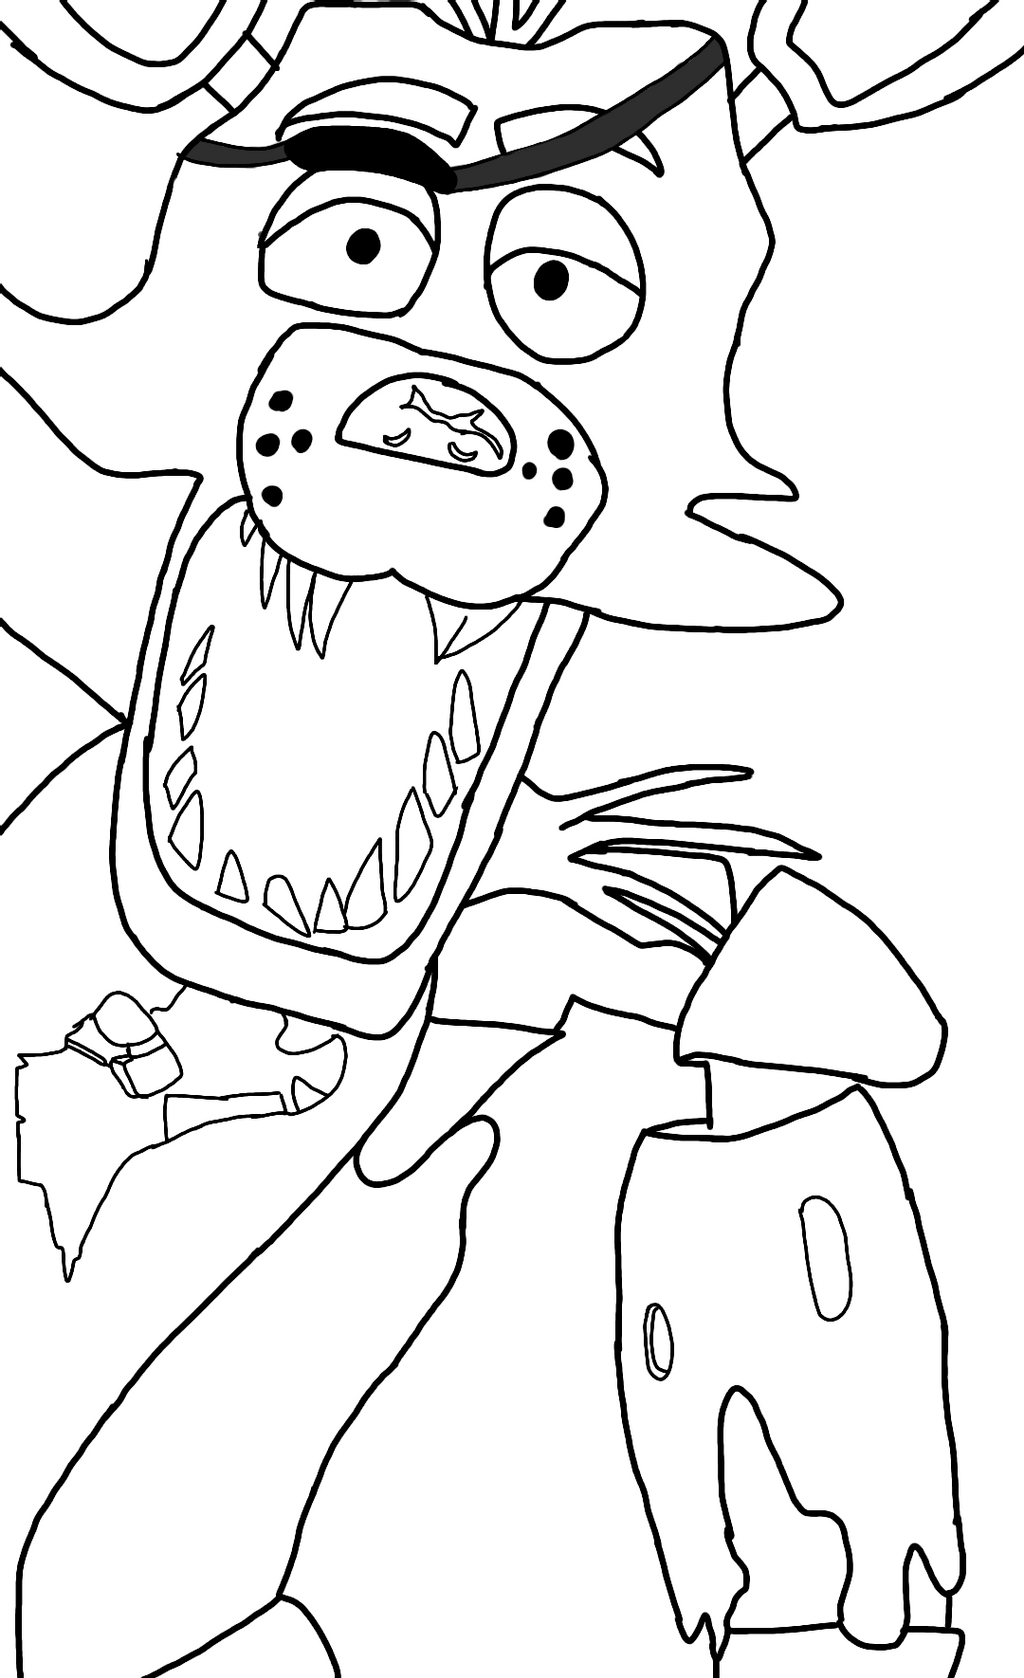 foxy coloring free 2 use fnaf foxy lineart by fireheart2firestar on foxy coloring